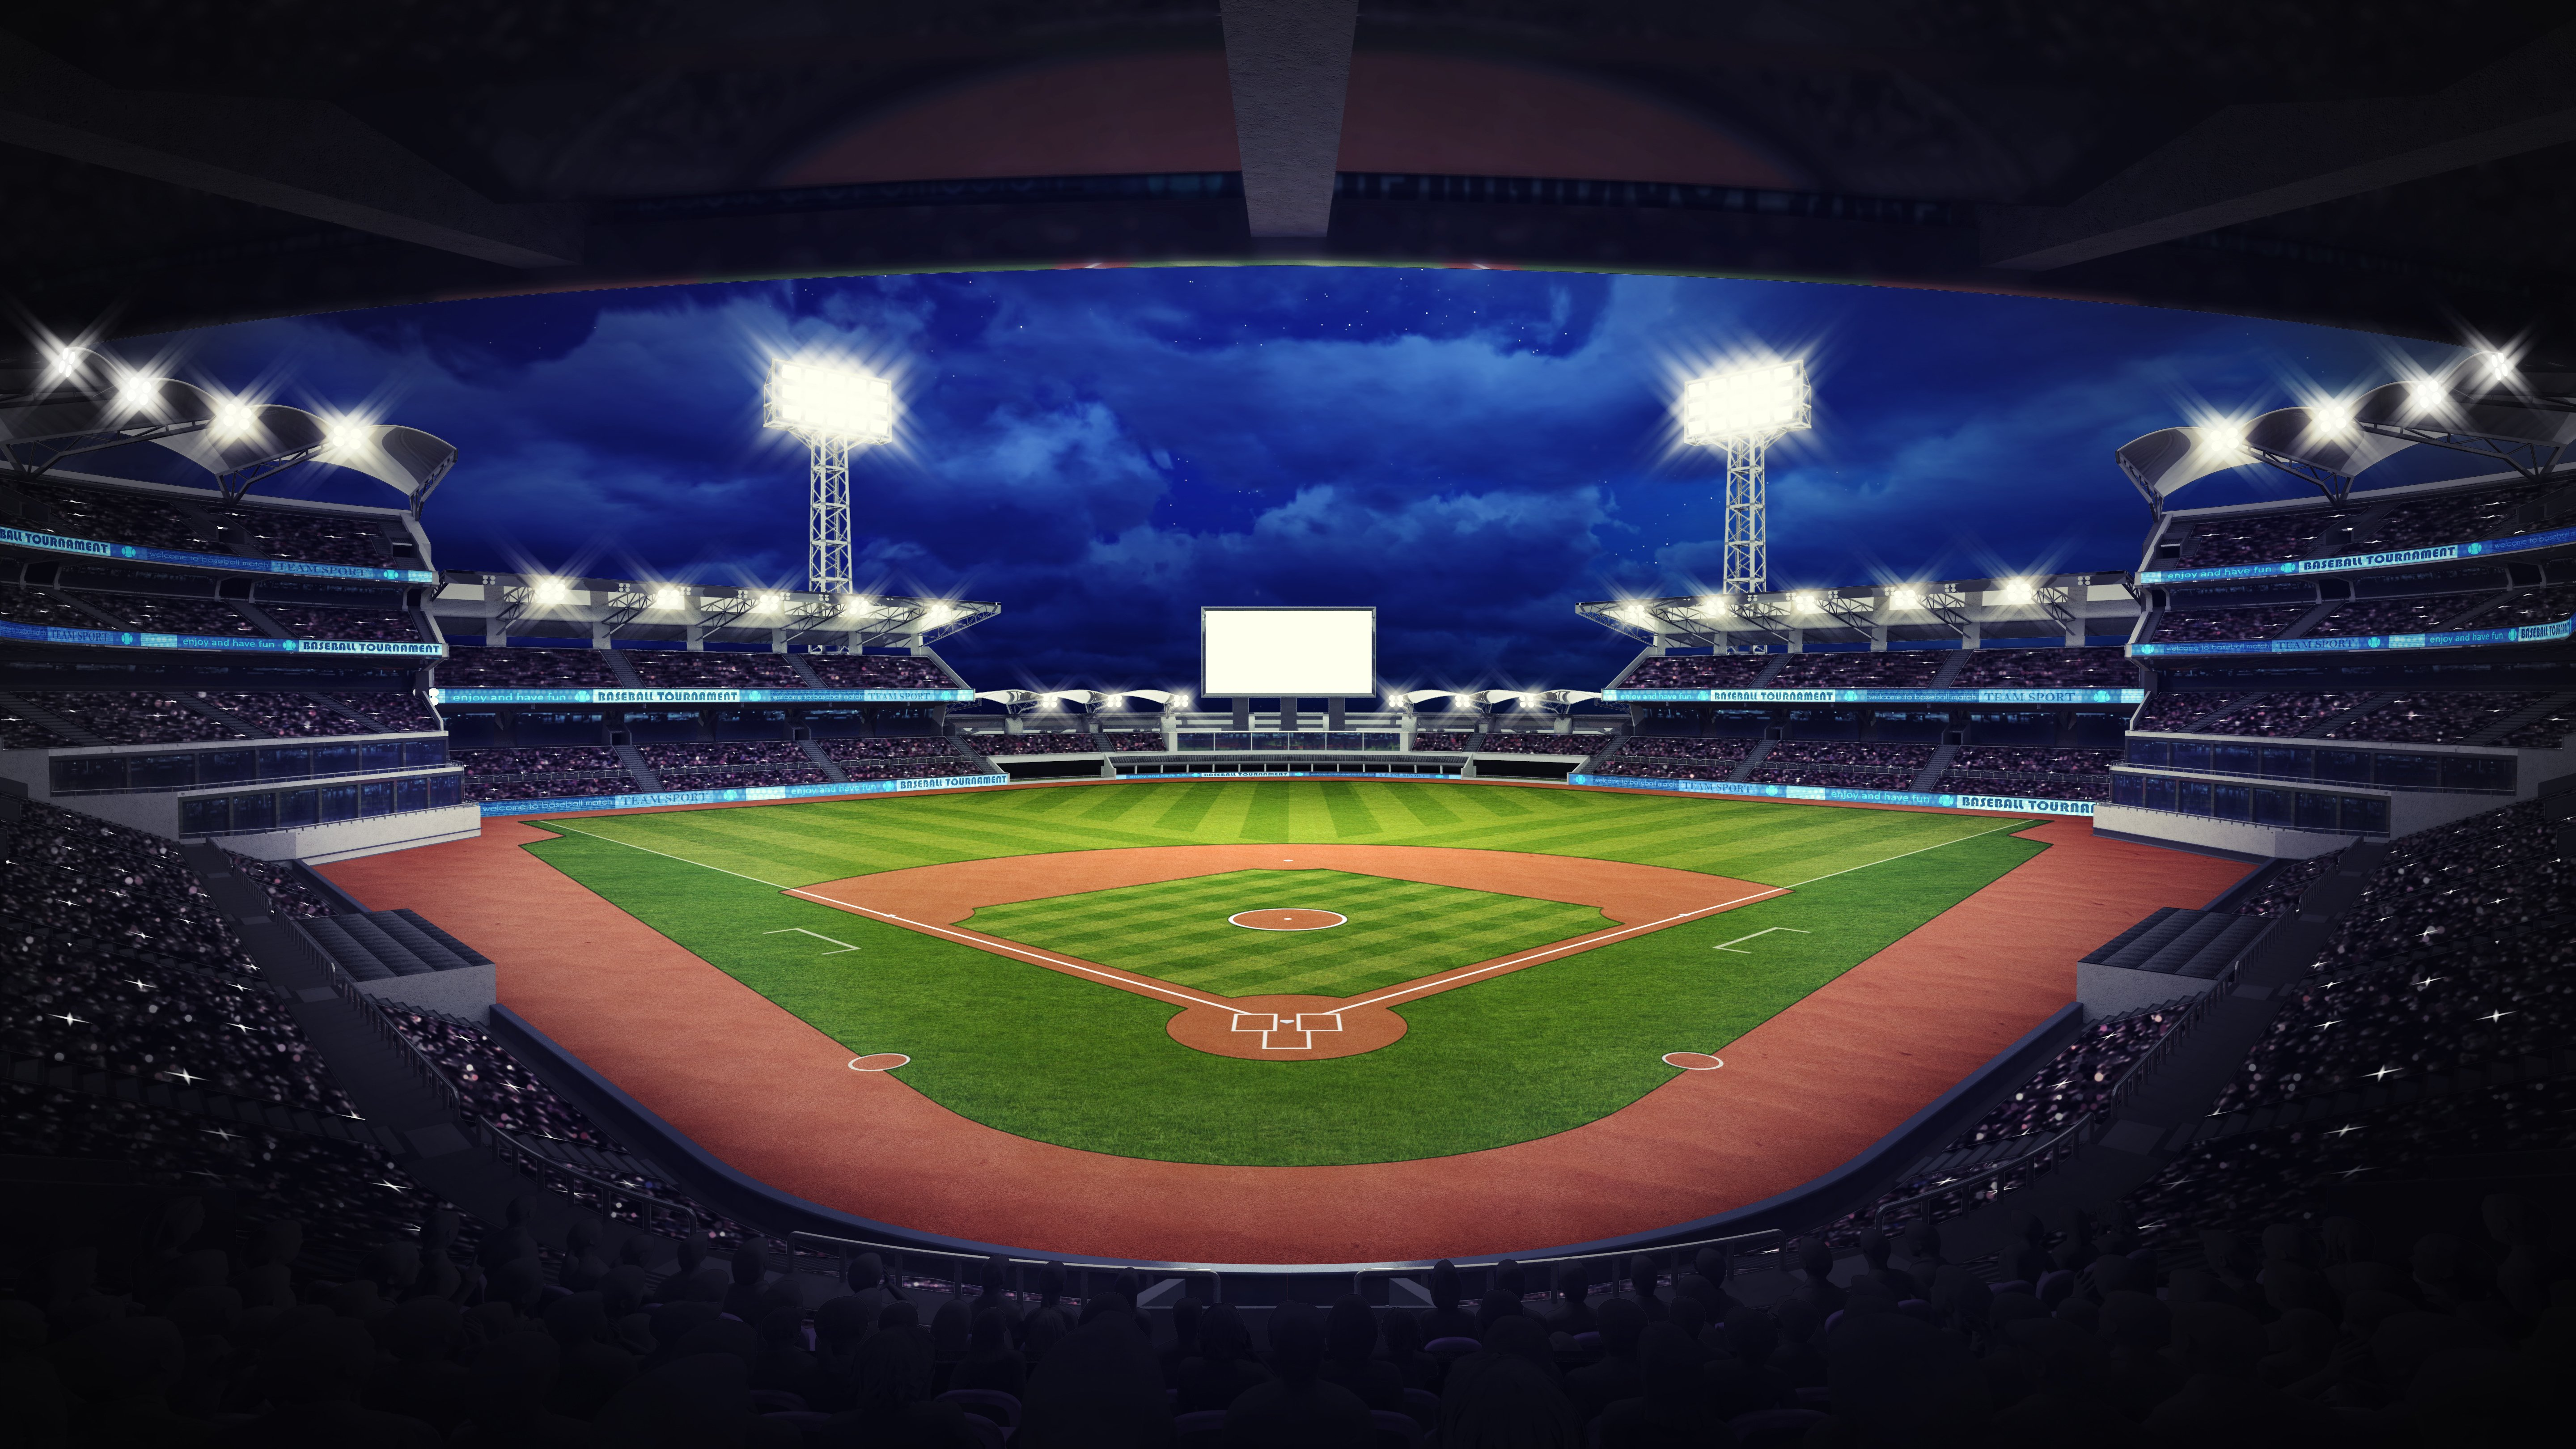 A baseball stadium under roof view with fans | Photo: Shutterstock